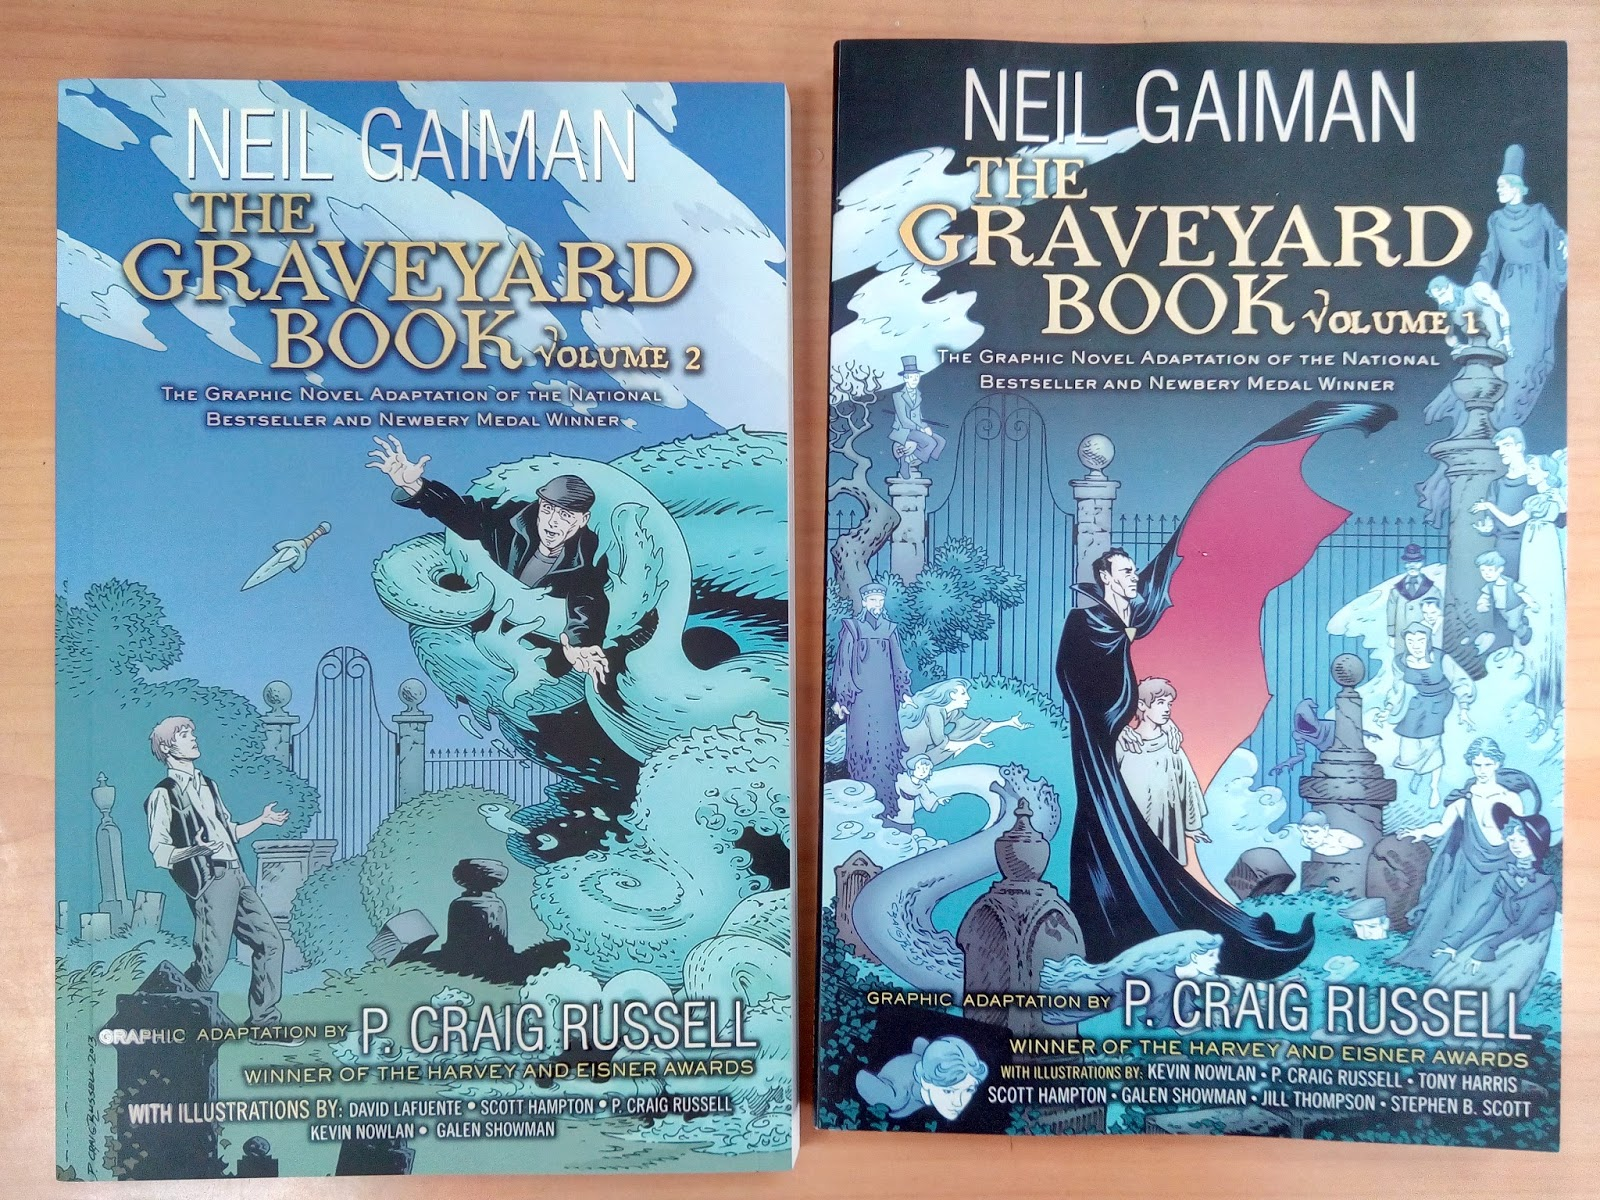 The Graveyard Book Questions and Answers